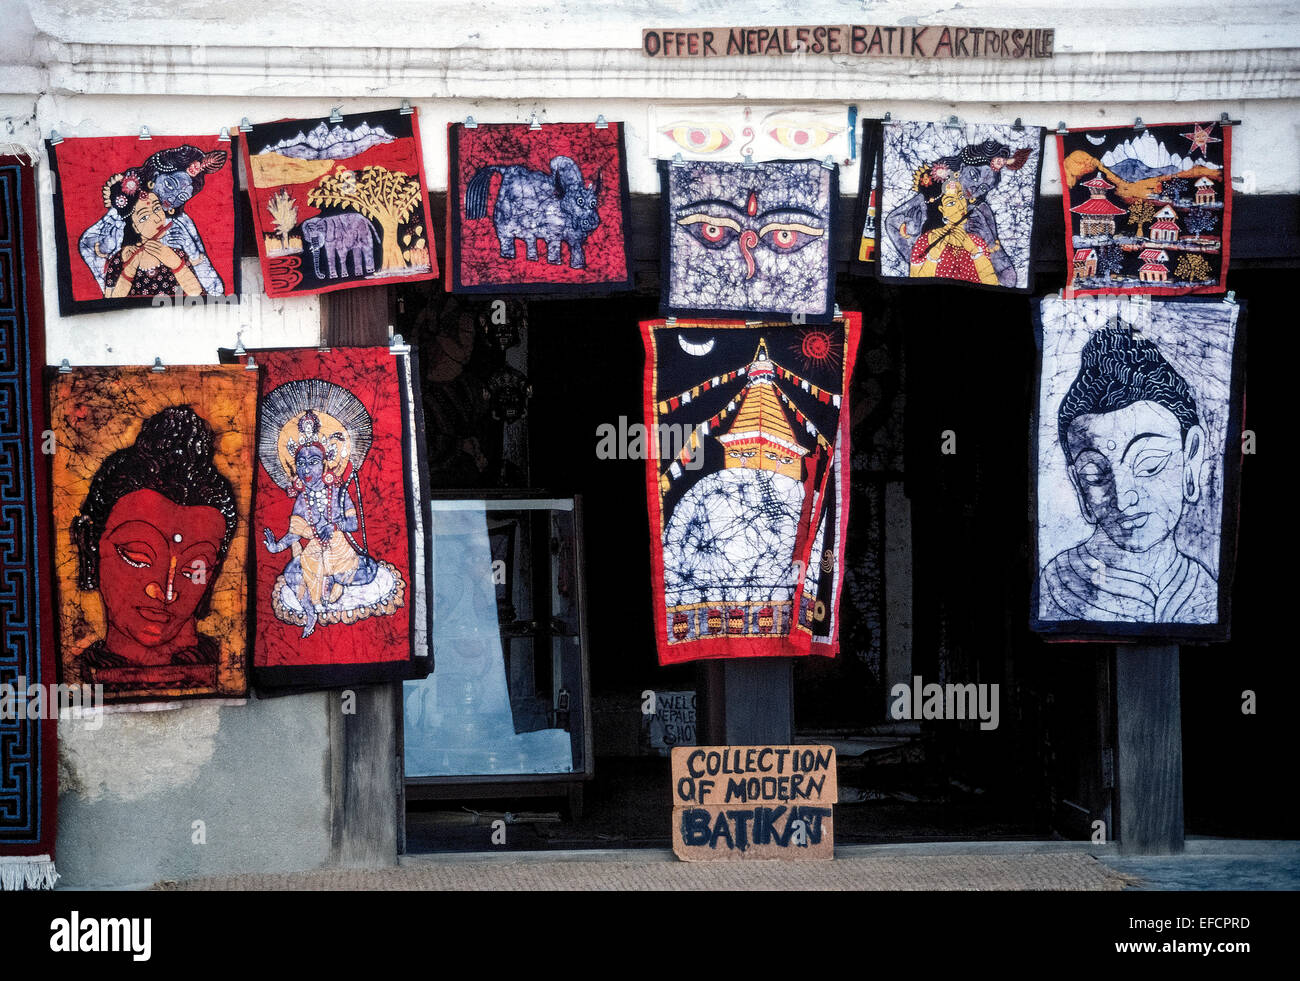 Handmade batik artworks with a variety of designs and colors are offered for sale outside of a shop in Kathmandu, - Stock Image